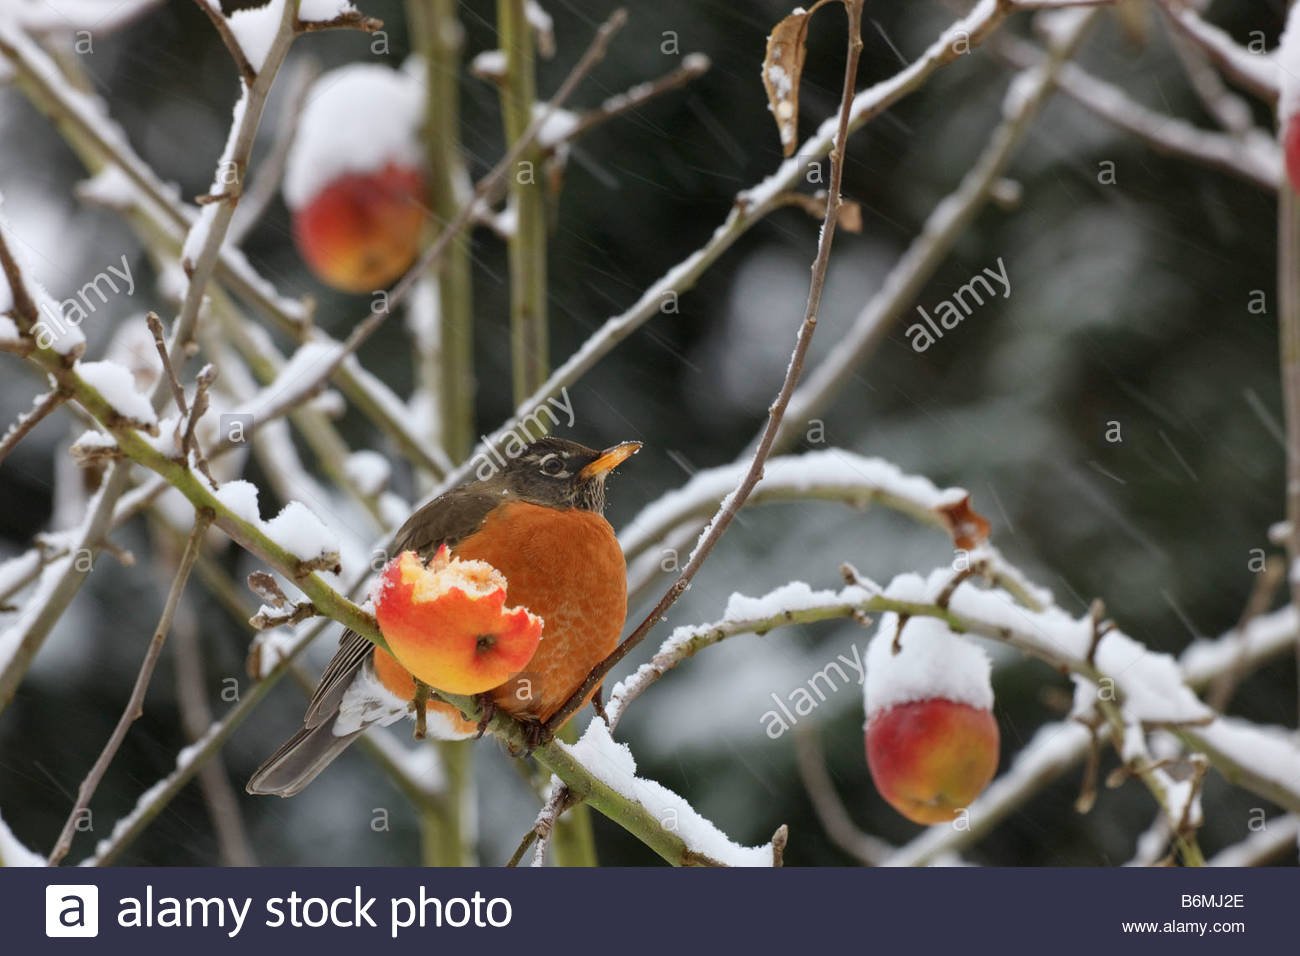 An American Robin (Turdus migratorius) feasts on an apple during a snowy winter storm in Western Washington. - Stock Image